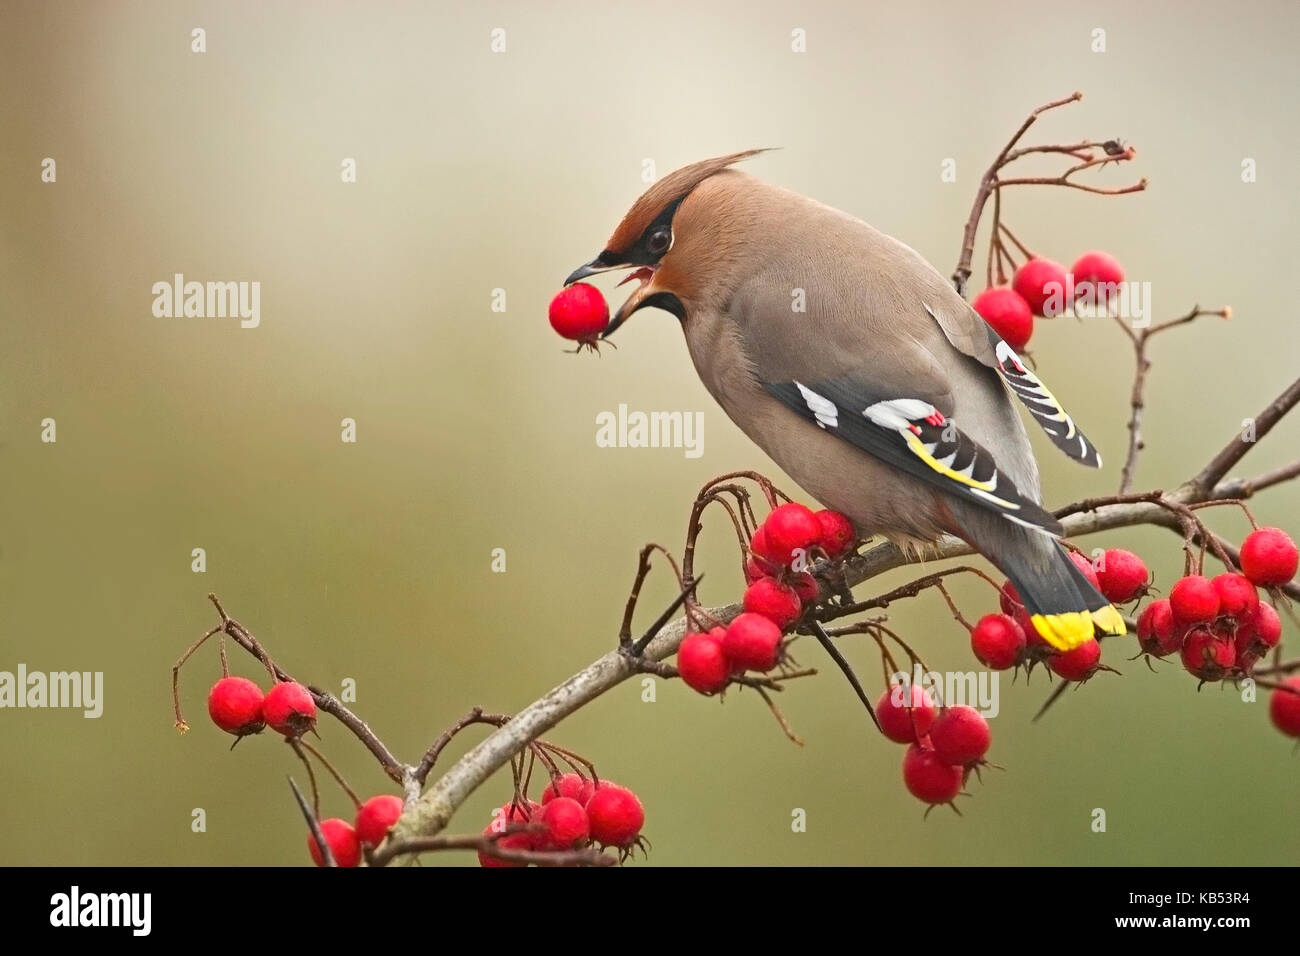 Bohemian Waxwing (Bombycilla garrulus) eating a berry, The Netherlands - Stock Image